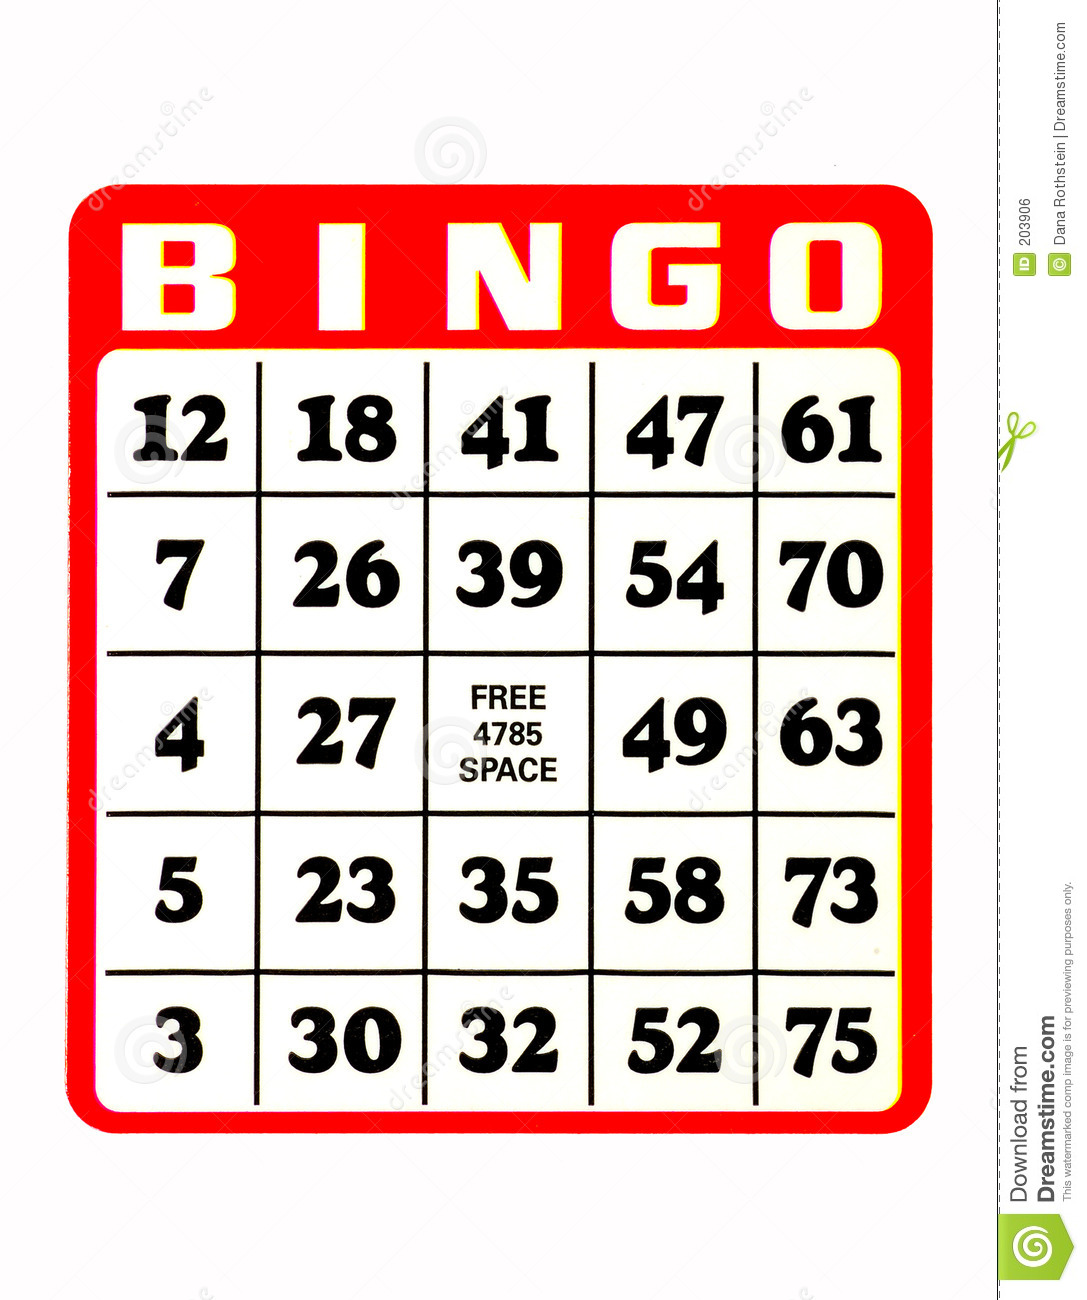 Royalty Free Stock Image Bingo Card Image203906 on Number Bingo 1 10 Printable